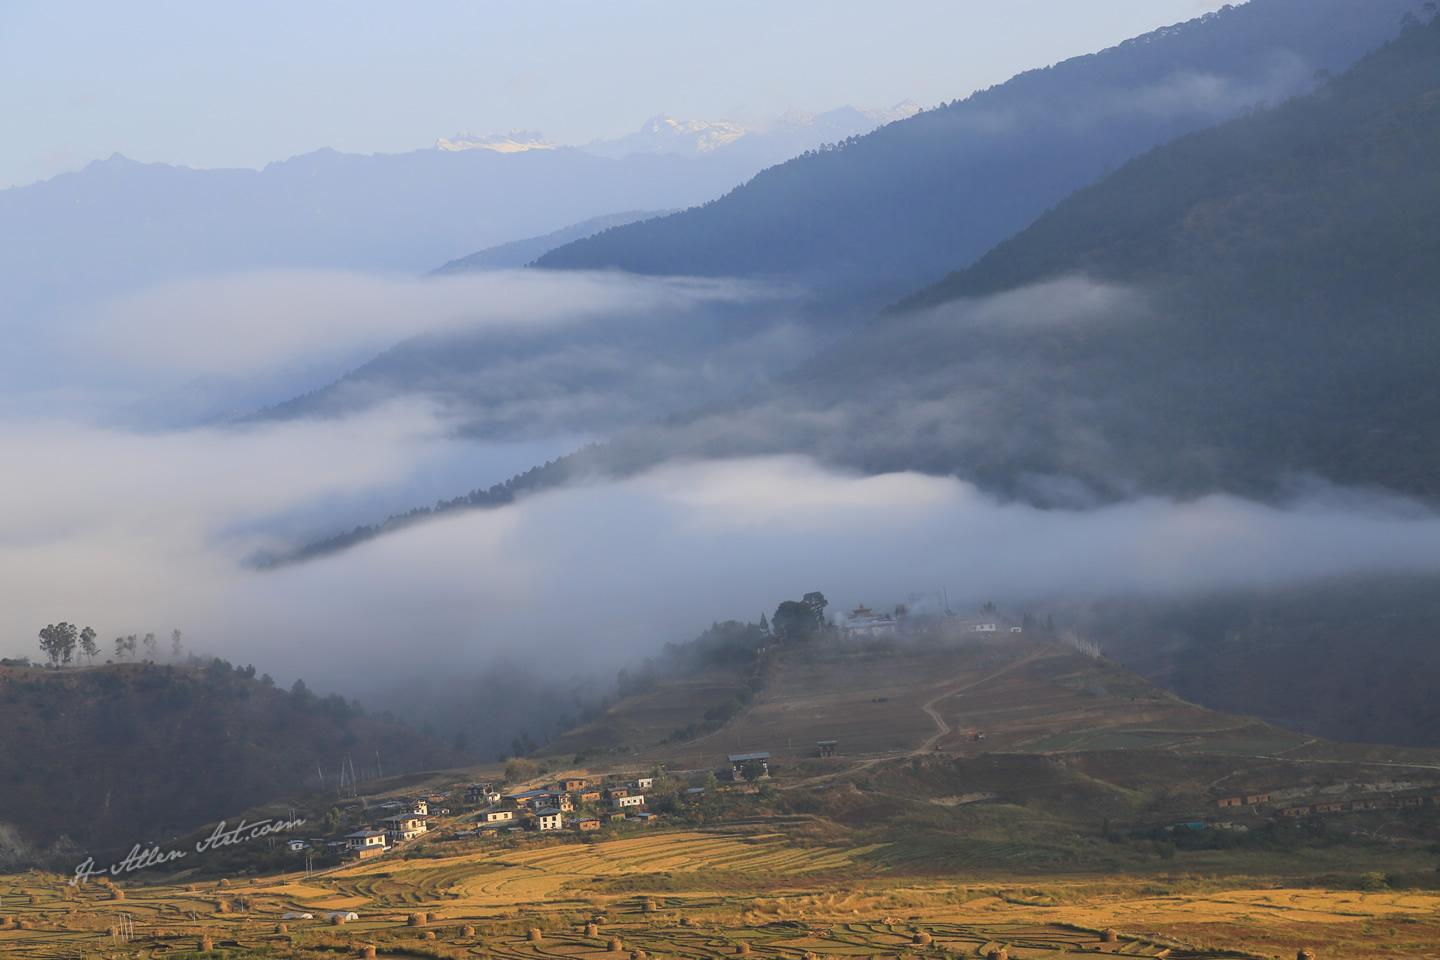 Bhutanese Landscape, Chumey Valley road to Bumthang, Bhutan